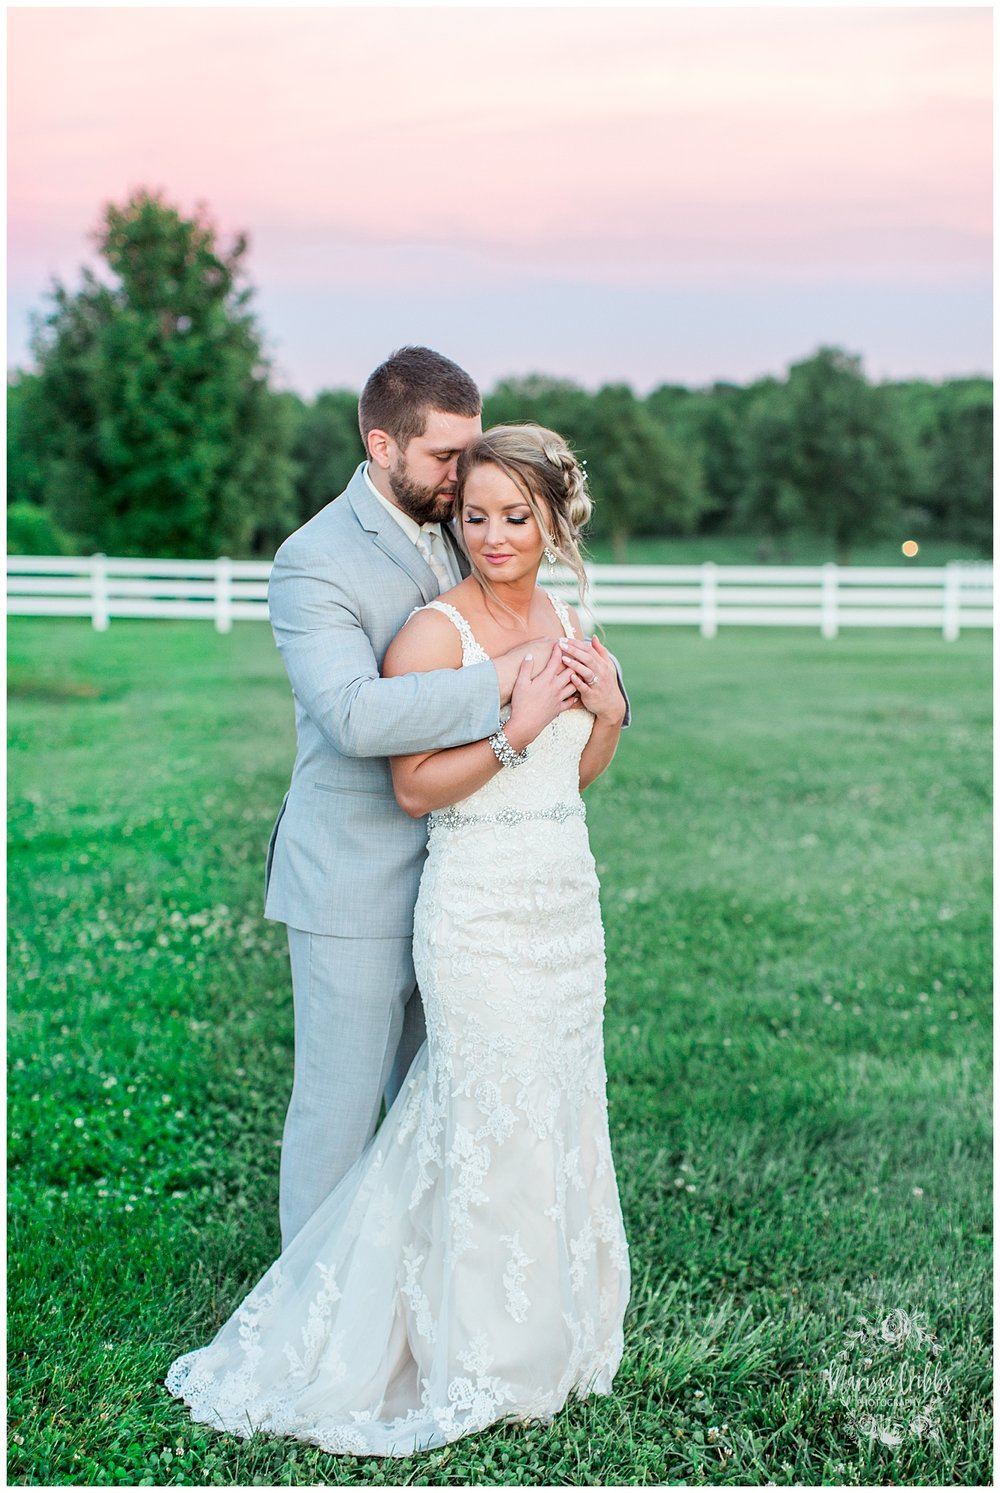 CHELSEY & TRAVIS MARRIED | MILDALE FARM WEDDING | KC WEDDING PHOTOGRAPHERS | MARISSA CRIBBS PHOTOGRAPHY_1361.jpg